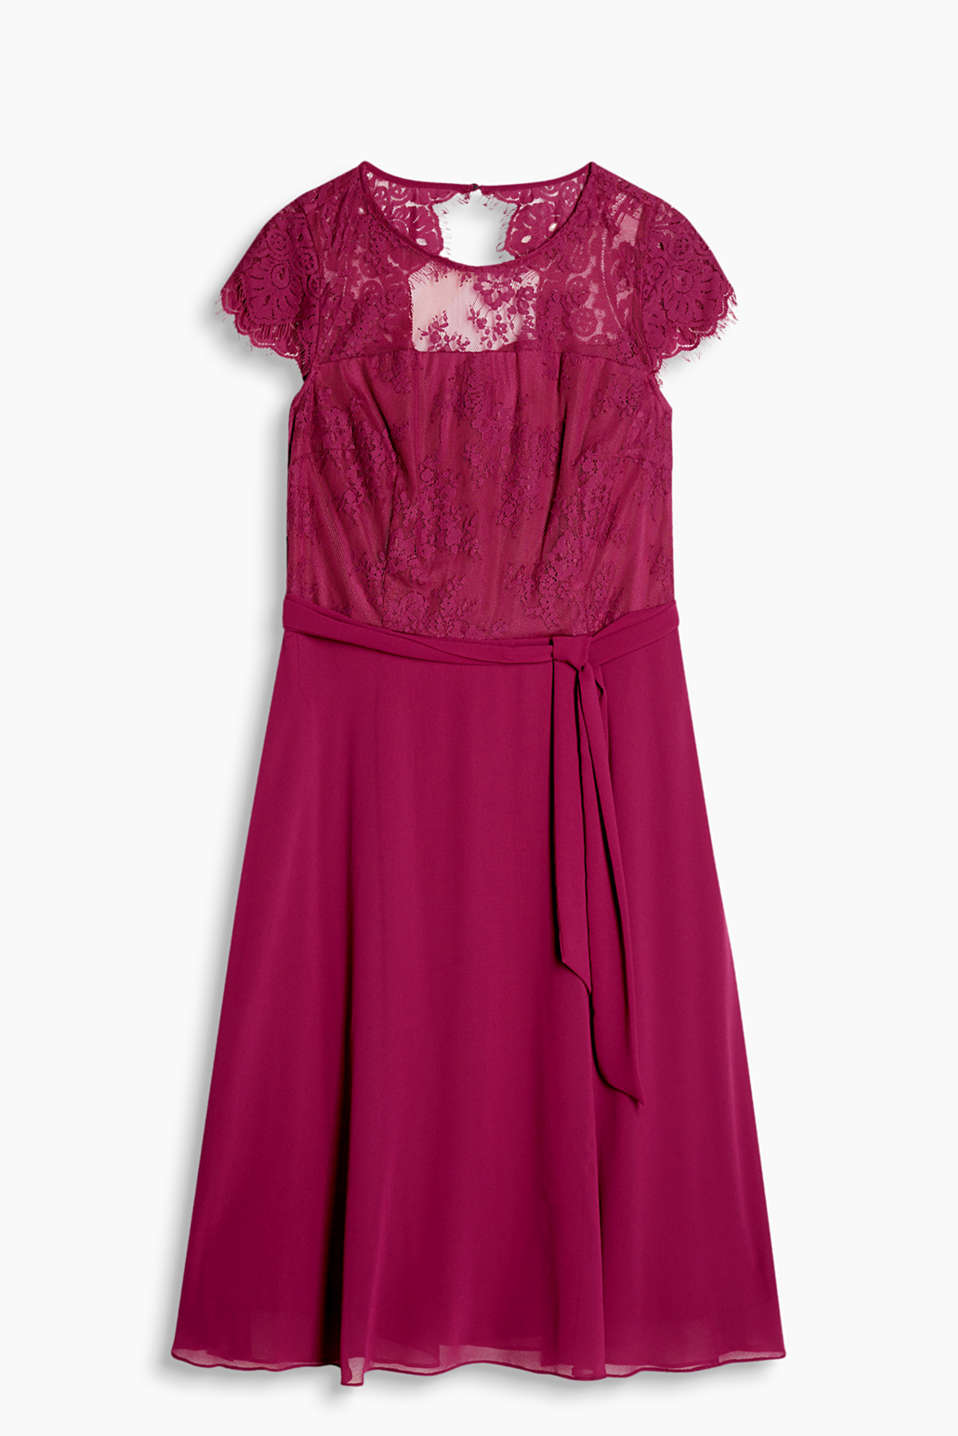 Charming dress with lace top section, flared chiffon skirt and tie-around belt